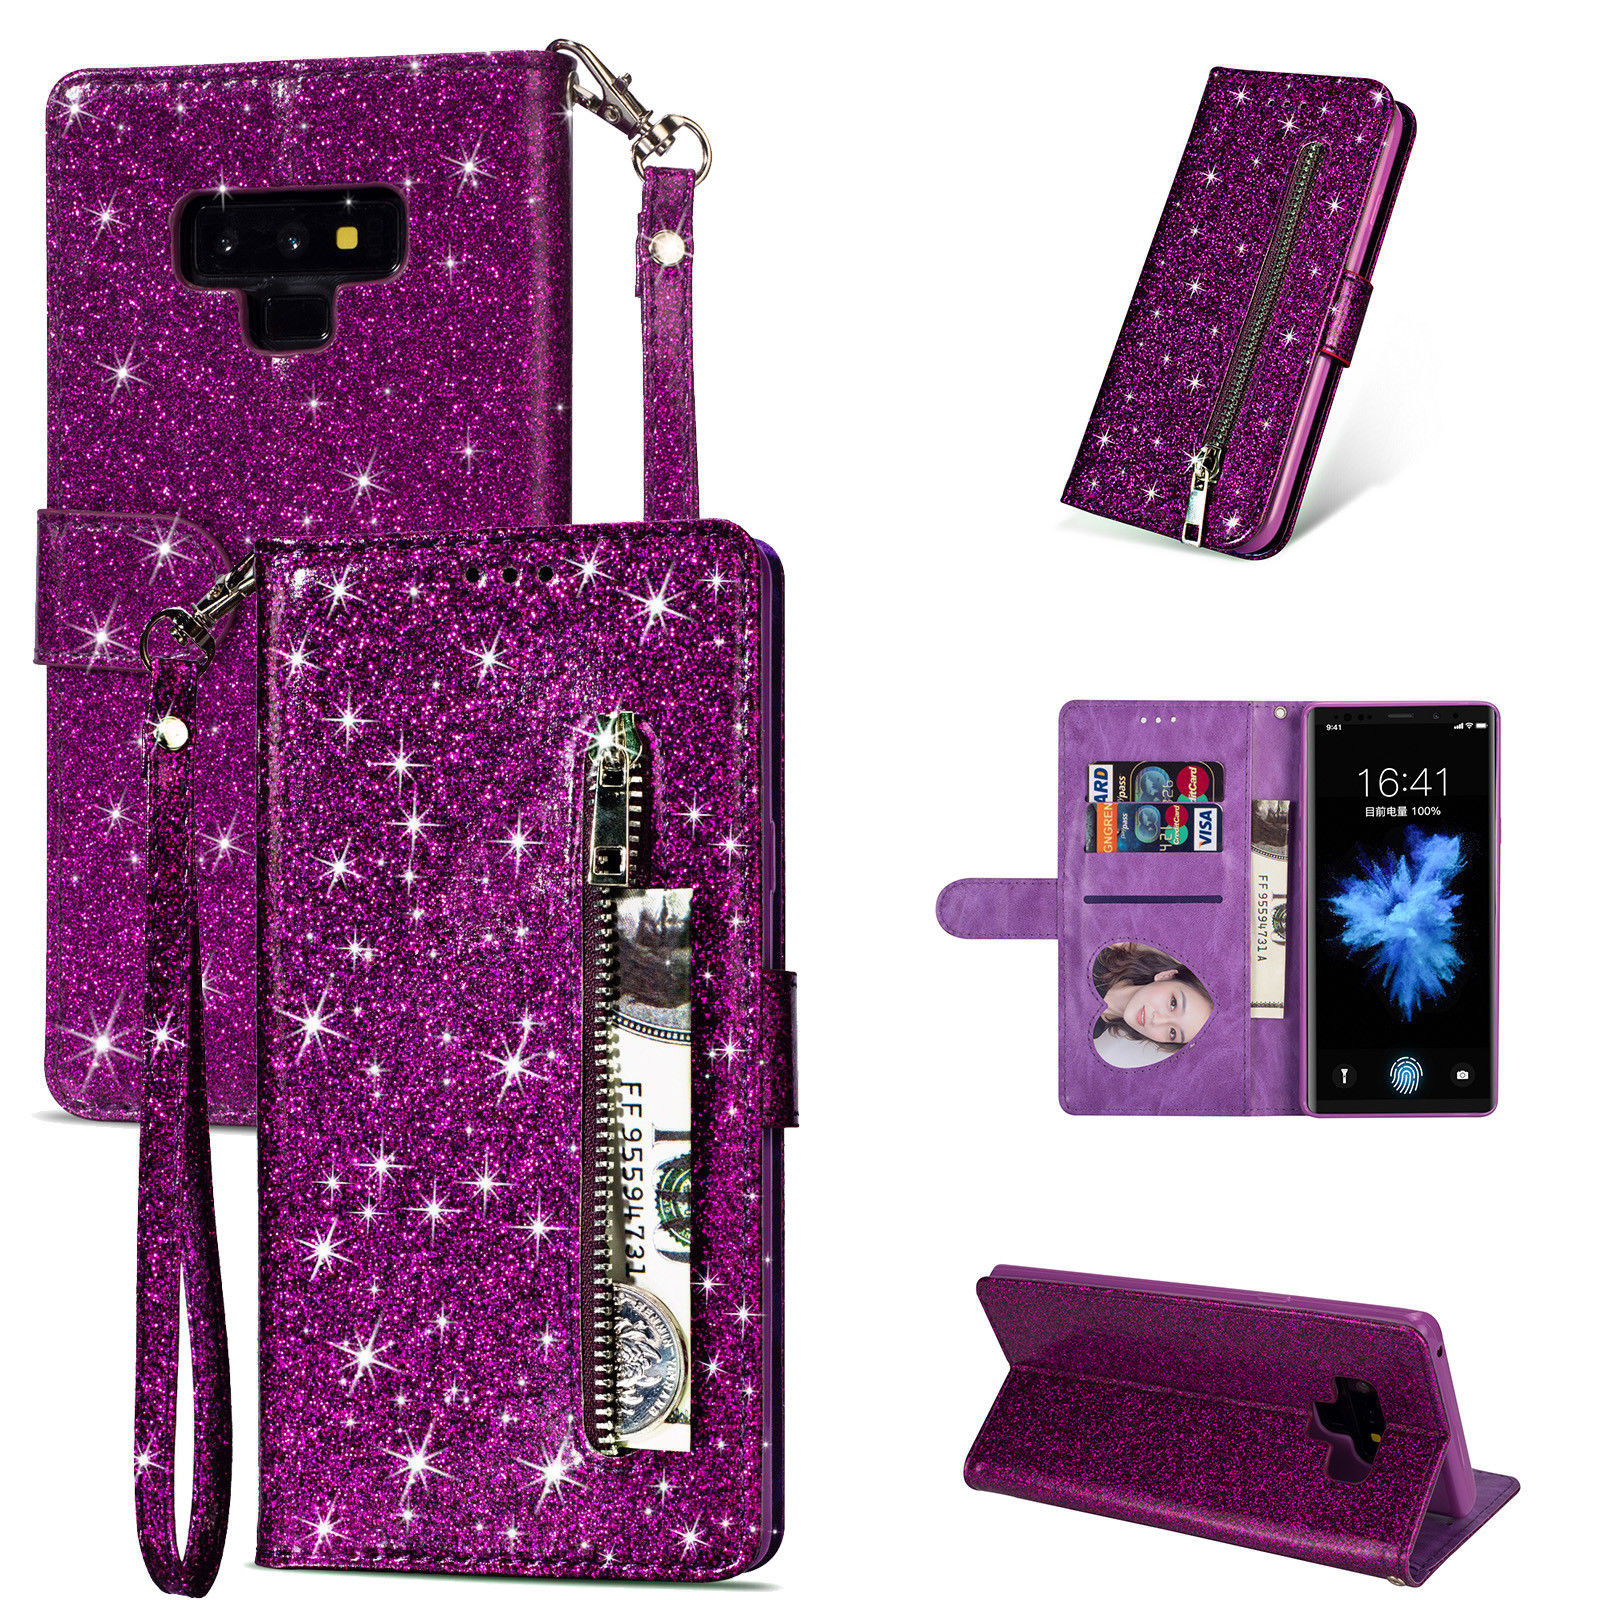 HTB1n TEdgmH3KVjSZKzq6z2OXXaw Bling Glitter Case For Samsung Galaxy S10e Note 8 9 S10 Plus S9 S8 Plus S7 Edge S6 Leather Flip Stand Zipper Wallet Cover Coque